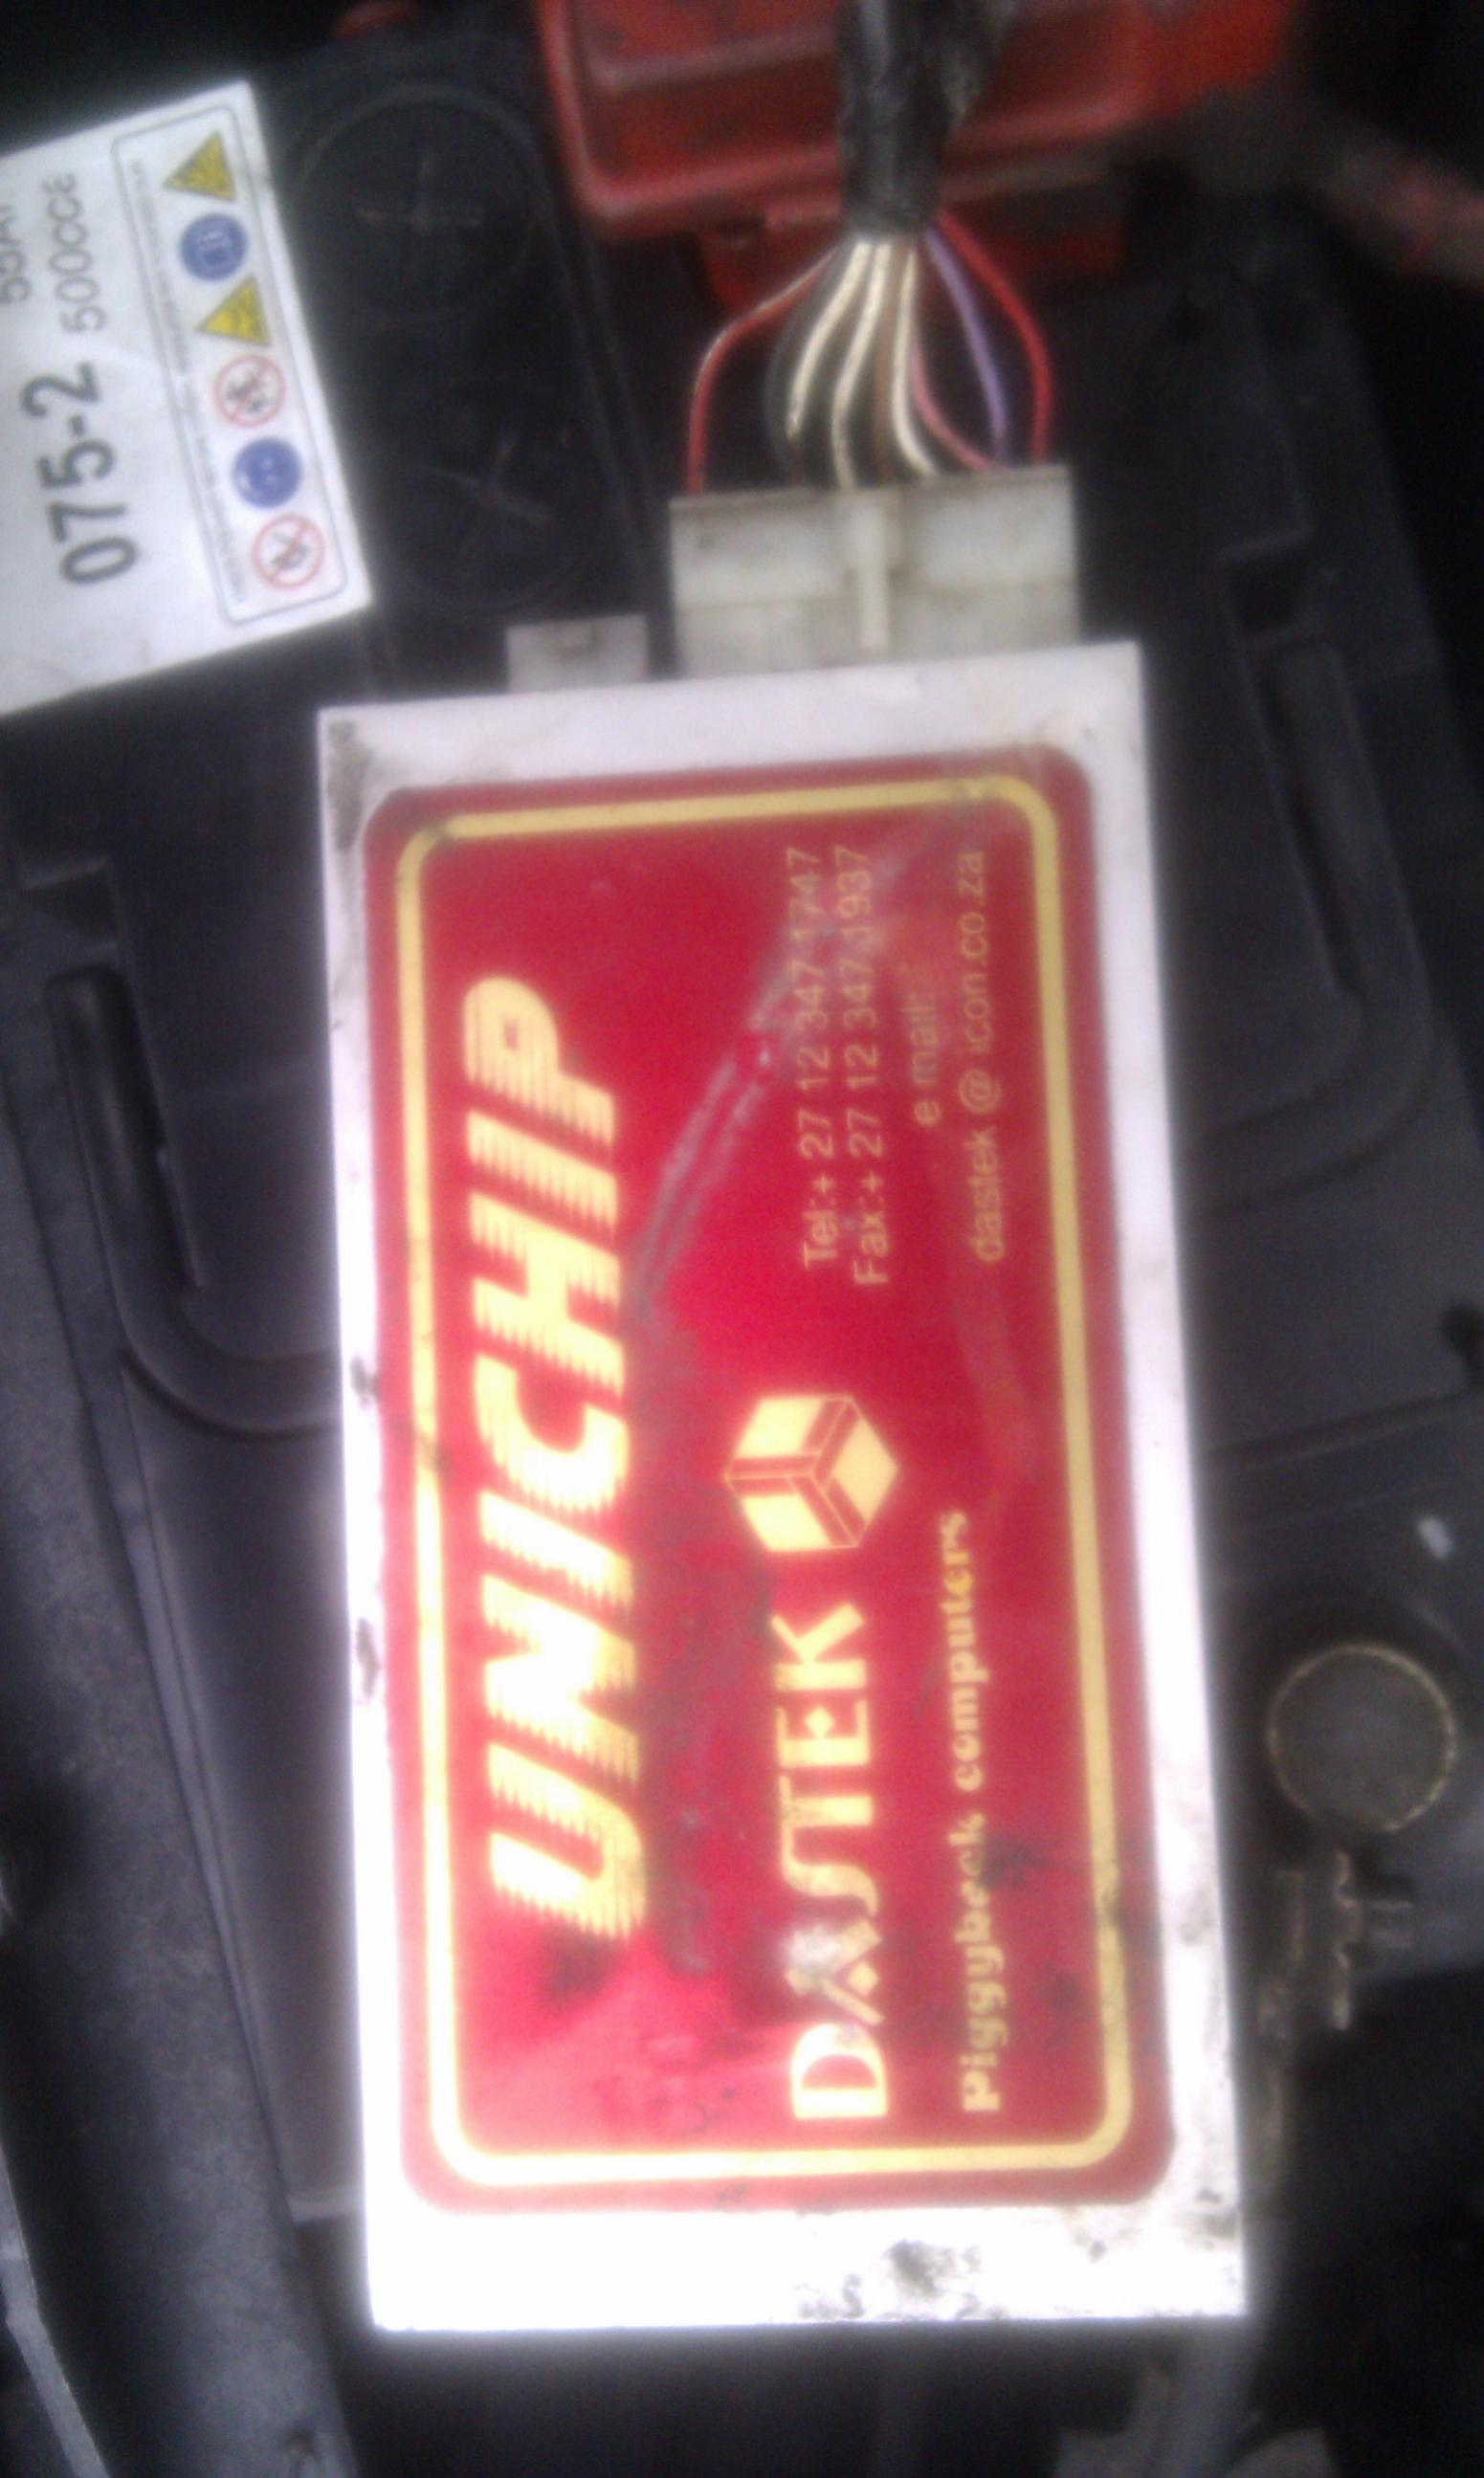 Which wire to make the car run unichip ecu content cliosport unfortunately simply unplugging it doesnt work as the car wont start so im guessing two of the wires need to be bridged on the unichip plug to allow it cheapraybanclubmaster Image collections